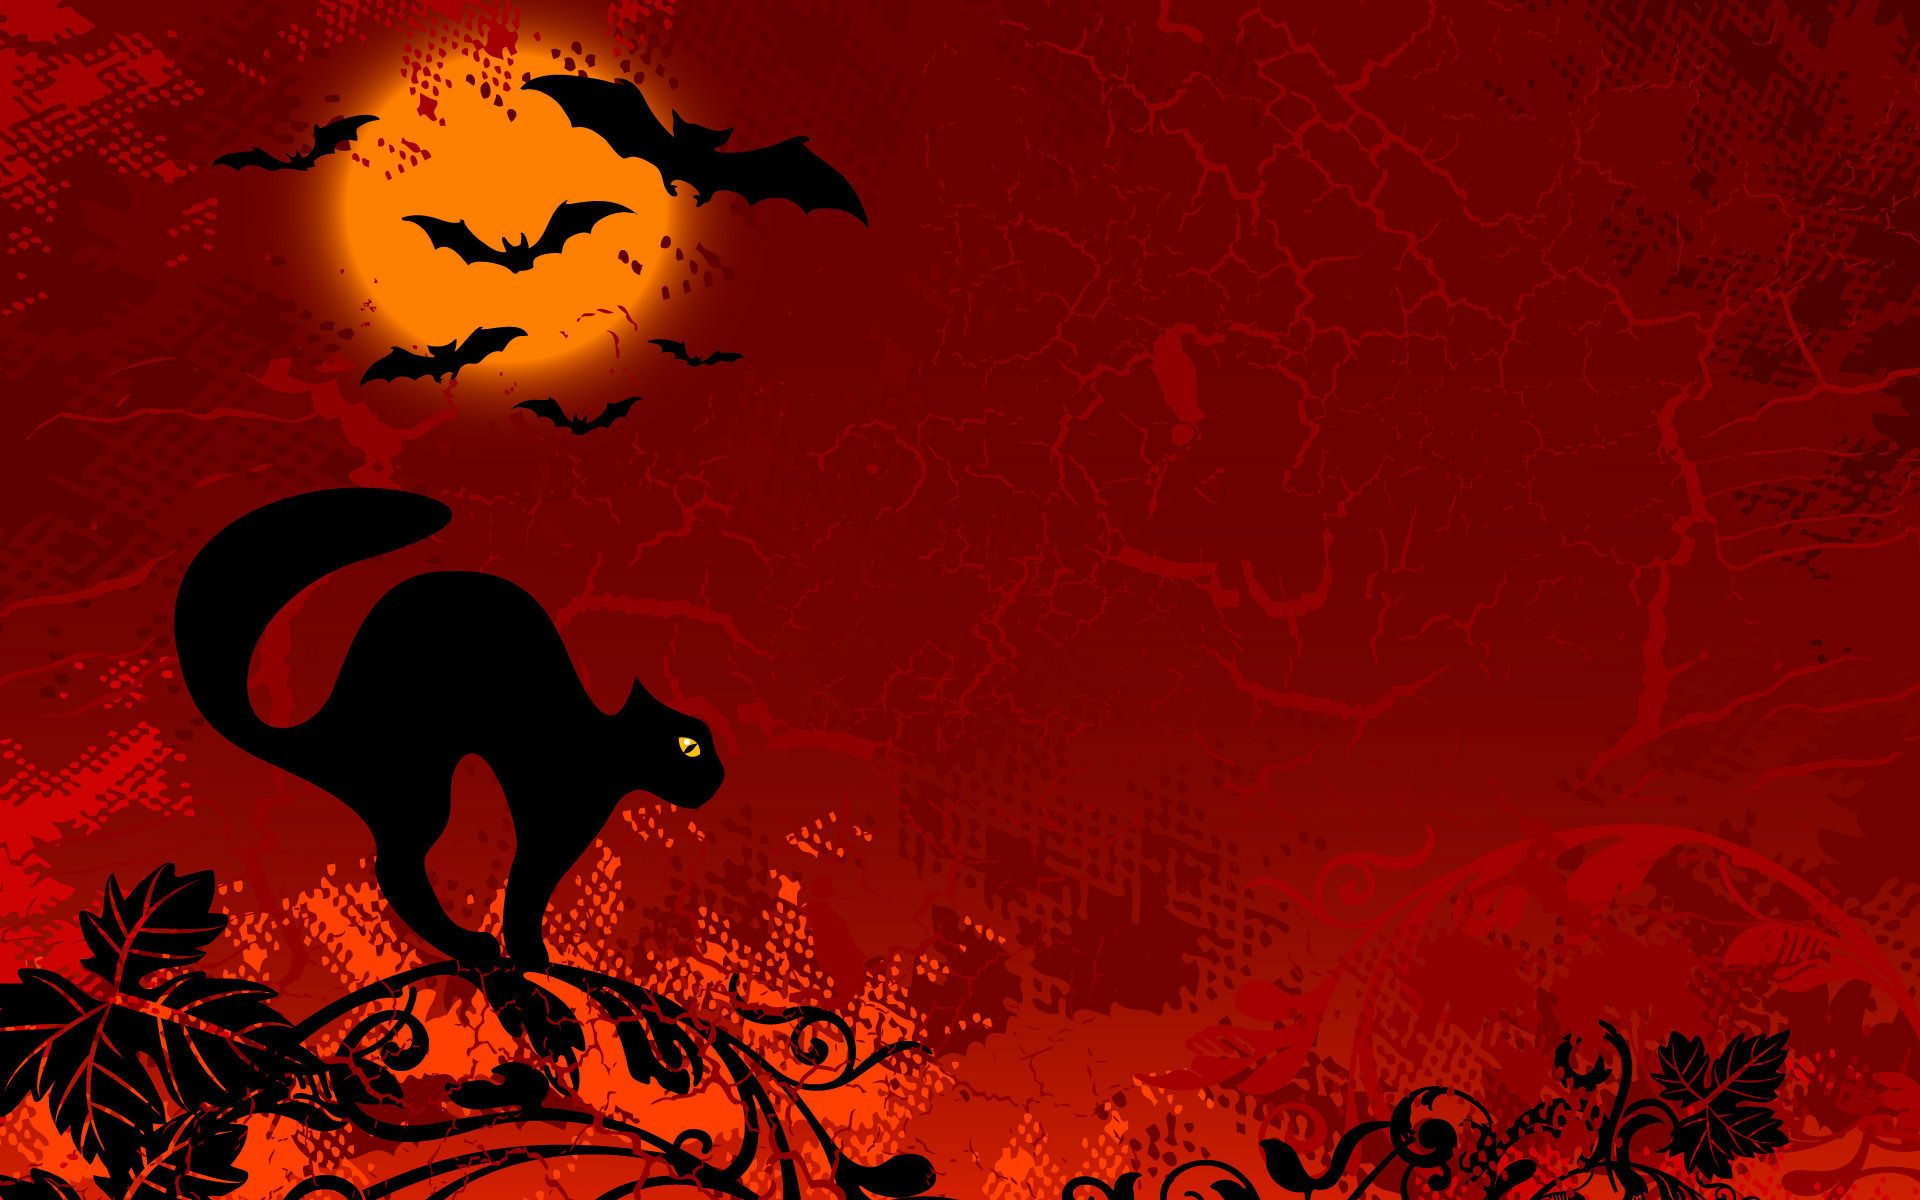 Must see Wallpaper Halloween Iphone 4s - 614345be145797a15cd55327397dfff8  Collection_499323.jpg